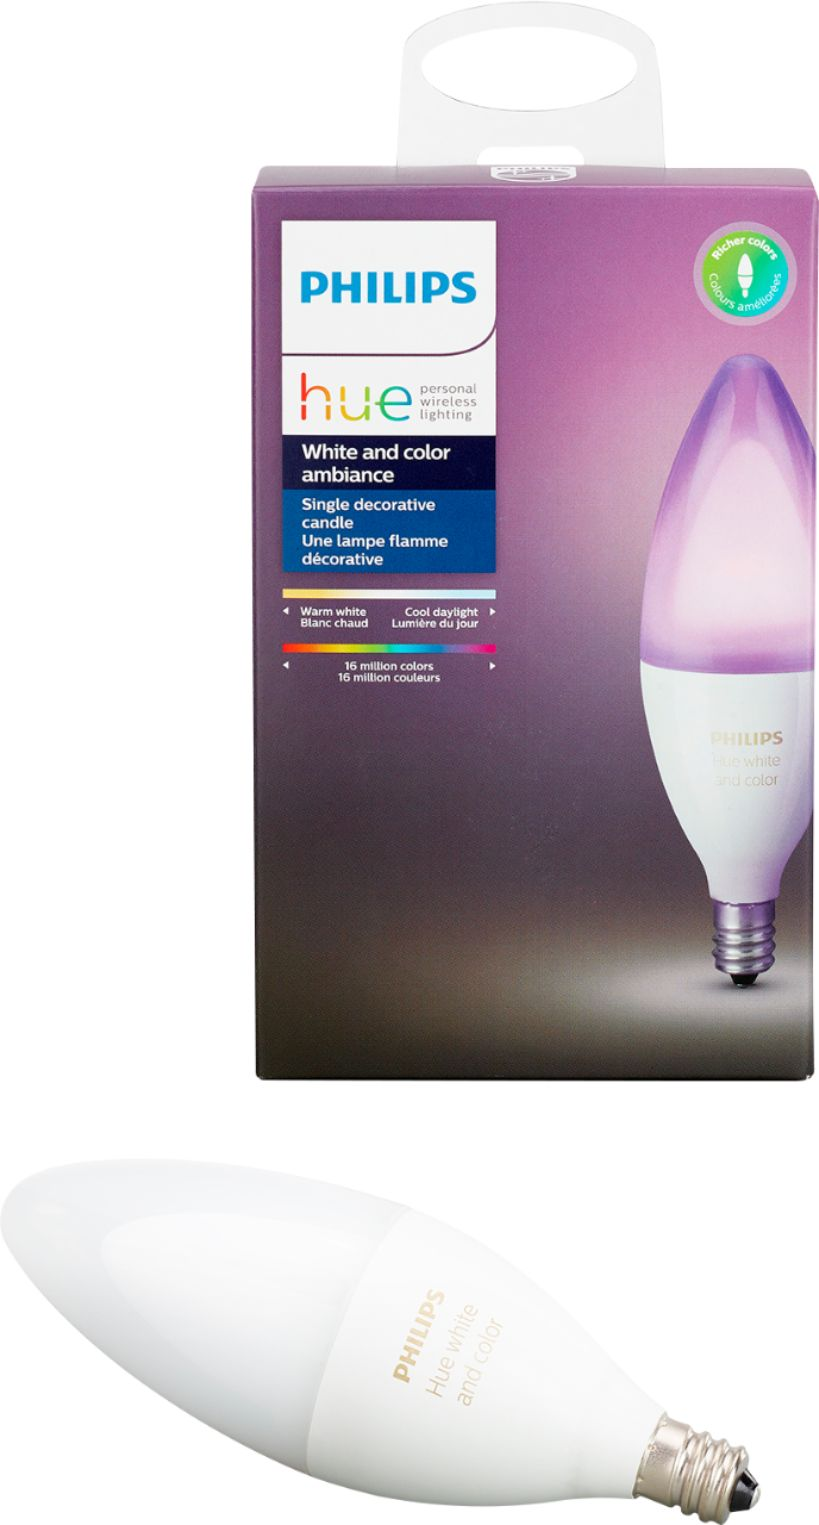 Philips Wireless Led Lights Philips Hue White And Color Ambiance E12 Wi Fi Smart Led Decorative Candle Bulb Multicolor